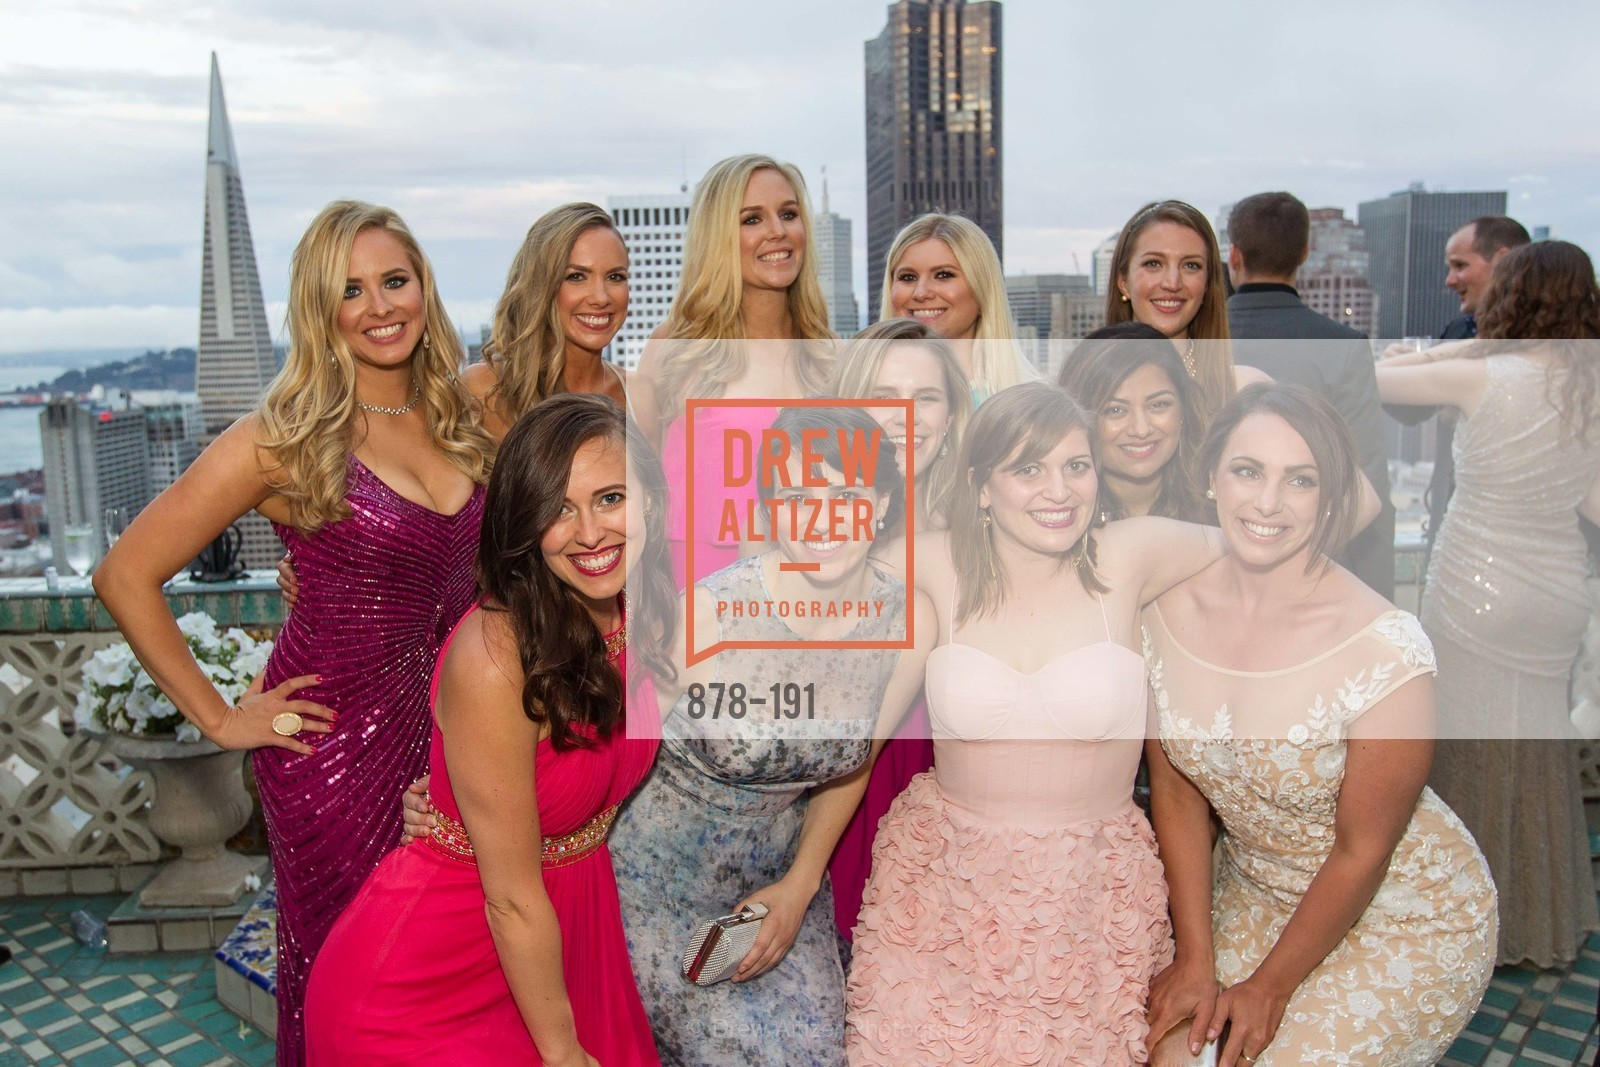 Elizabeth Sgarrella, Michelle Bertino, Bailey Douglass, Cambria Steel, Summer McCormick, Jonna Constantine, Priya Saiprasad, Julia Allyn, Genevieve Haight, Spinsters of San Francisco Annual Ball 2015, Penthouse at the Fairmont San Francisco (950 Mason Street). 950 Mason Street, June 28th, 2015,Drew Altizer, Drew Altizer Photography, full-service event agency, private events, San Francisco photographer, photographer California